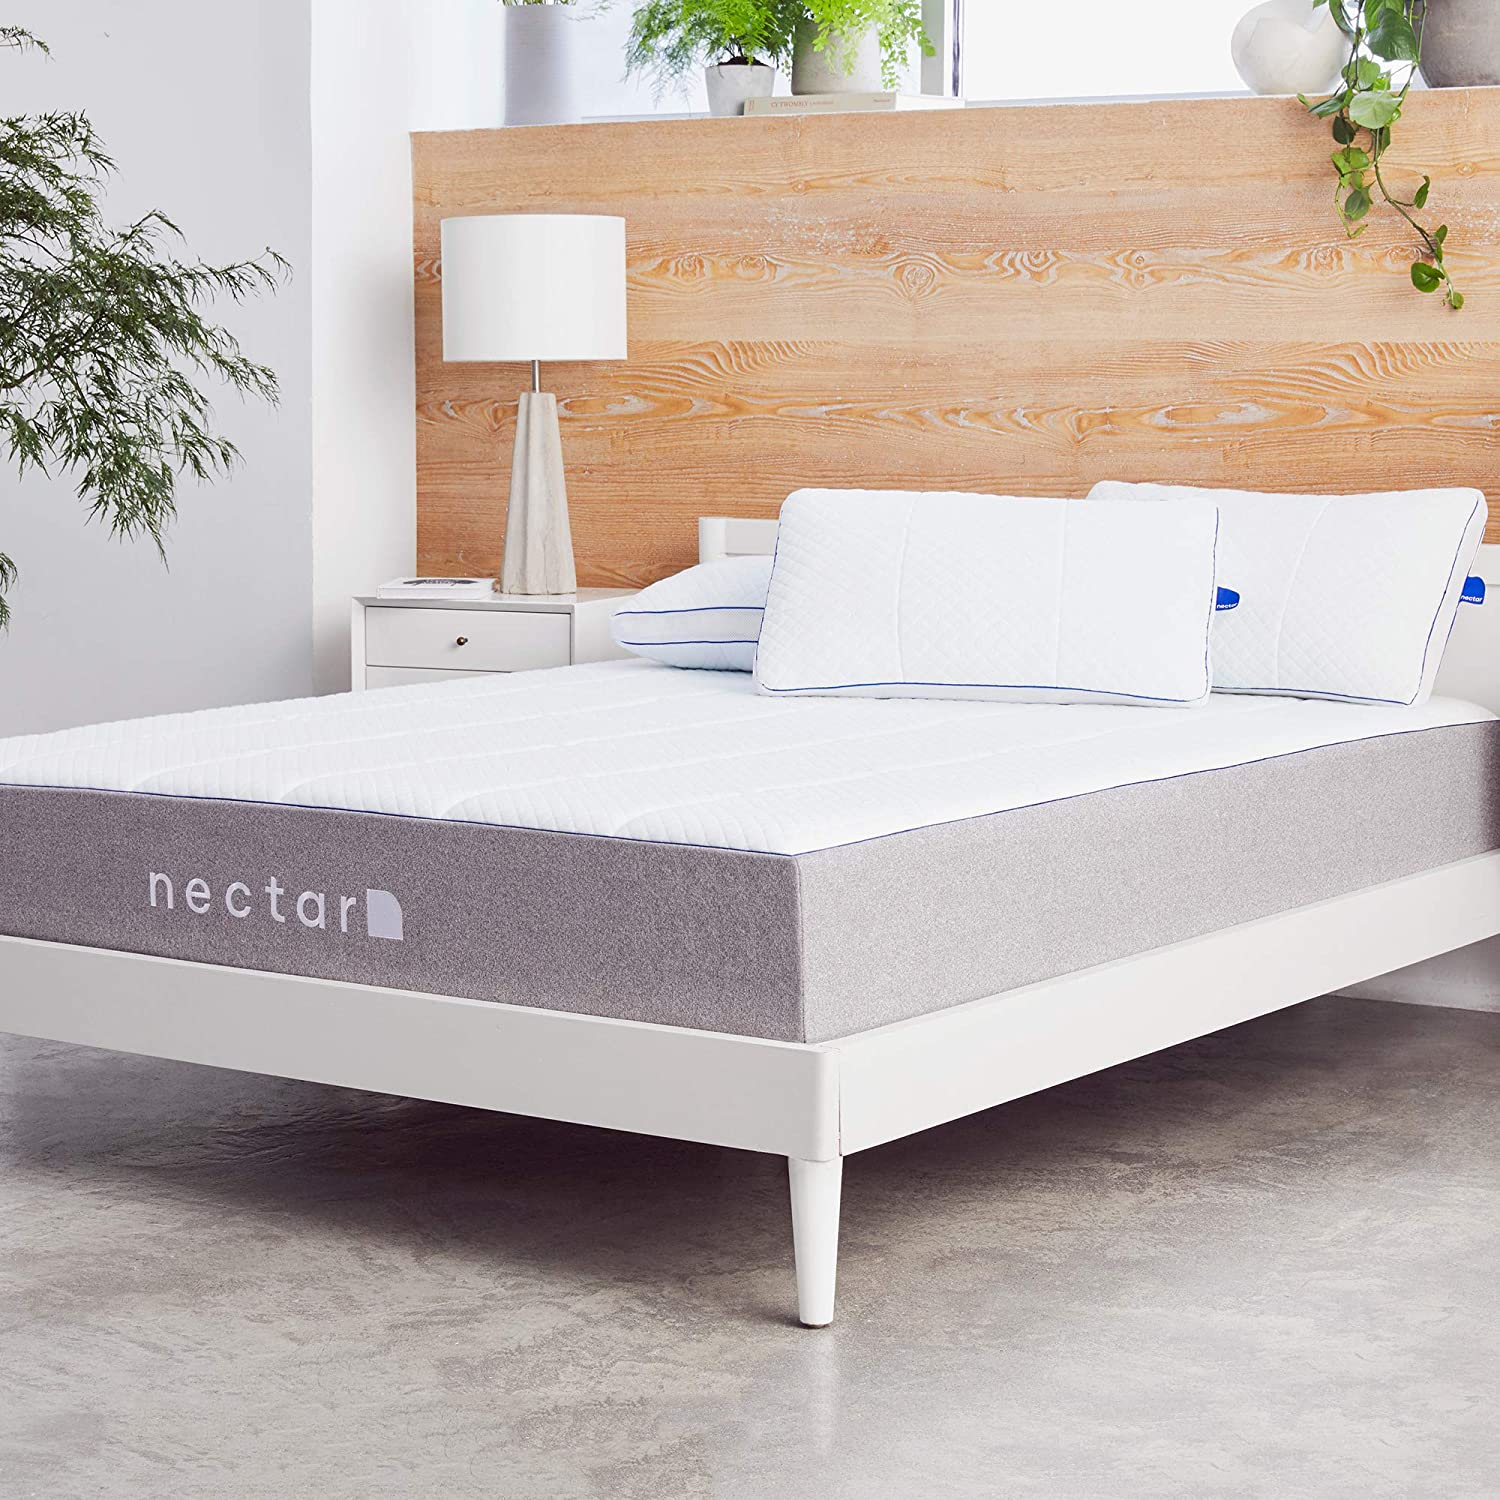 Nectar Queen Mattress + 2 Pillows Included - Gel Memory Foam